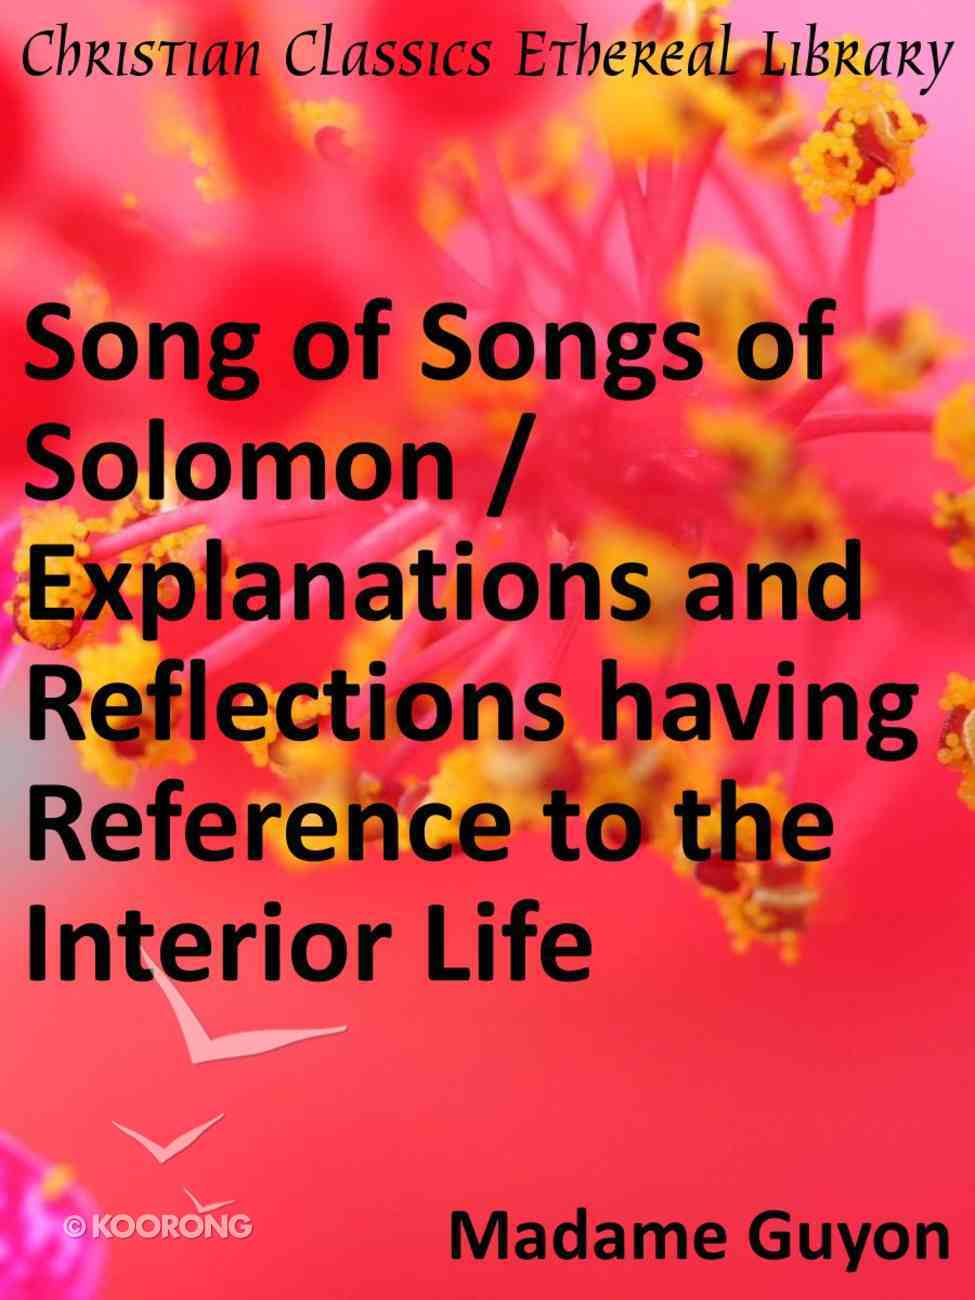 Song of Songs of Solomon / Explanations and Reflections eBook